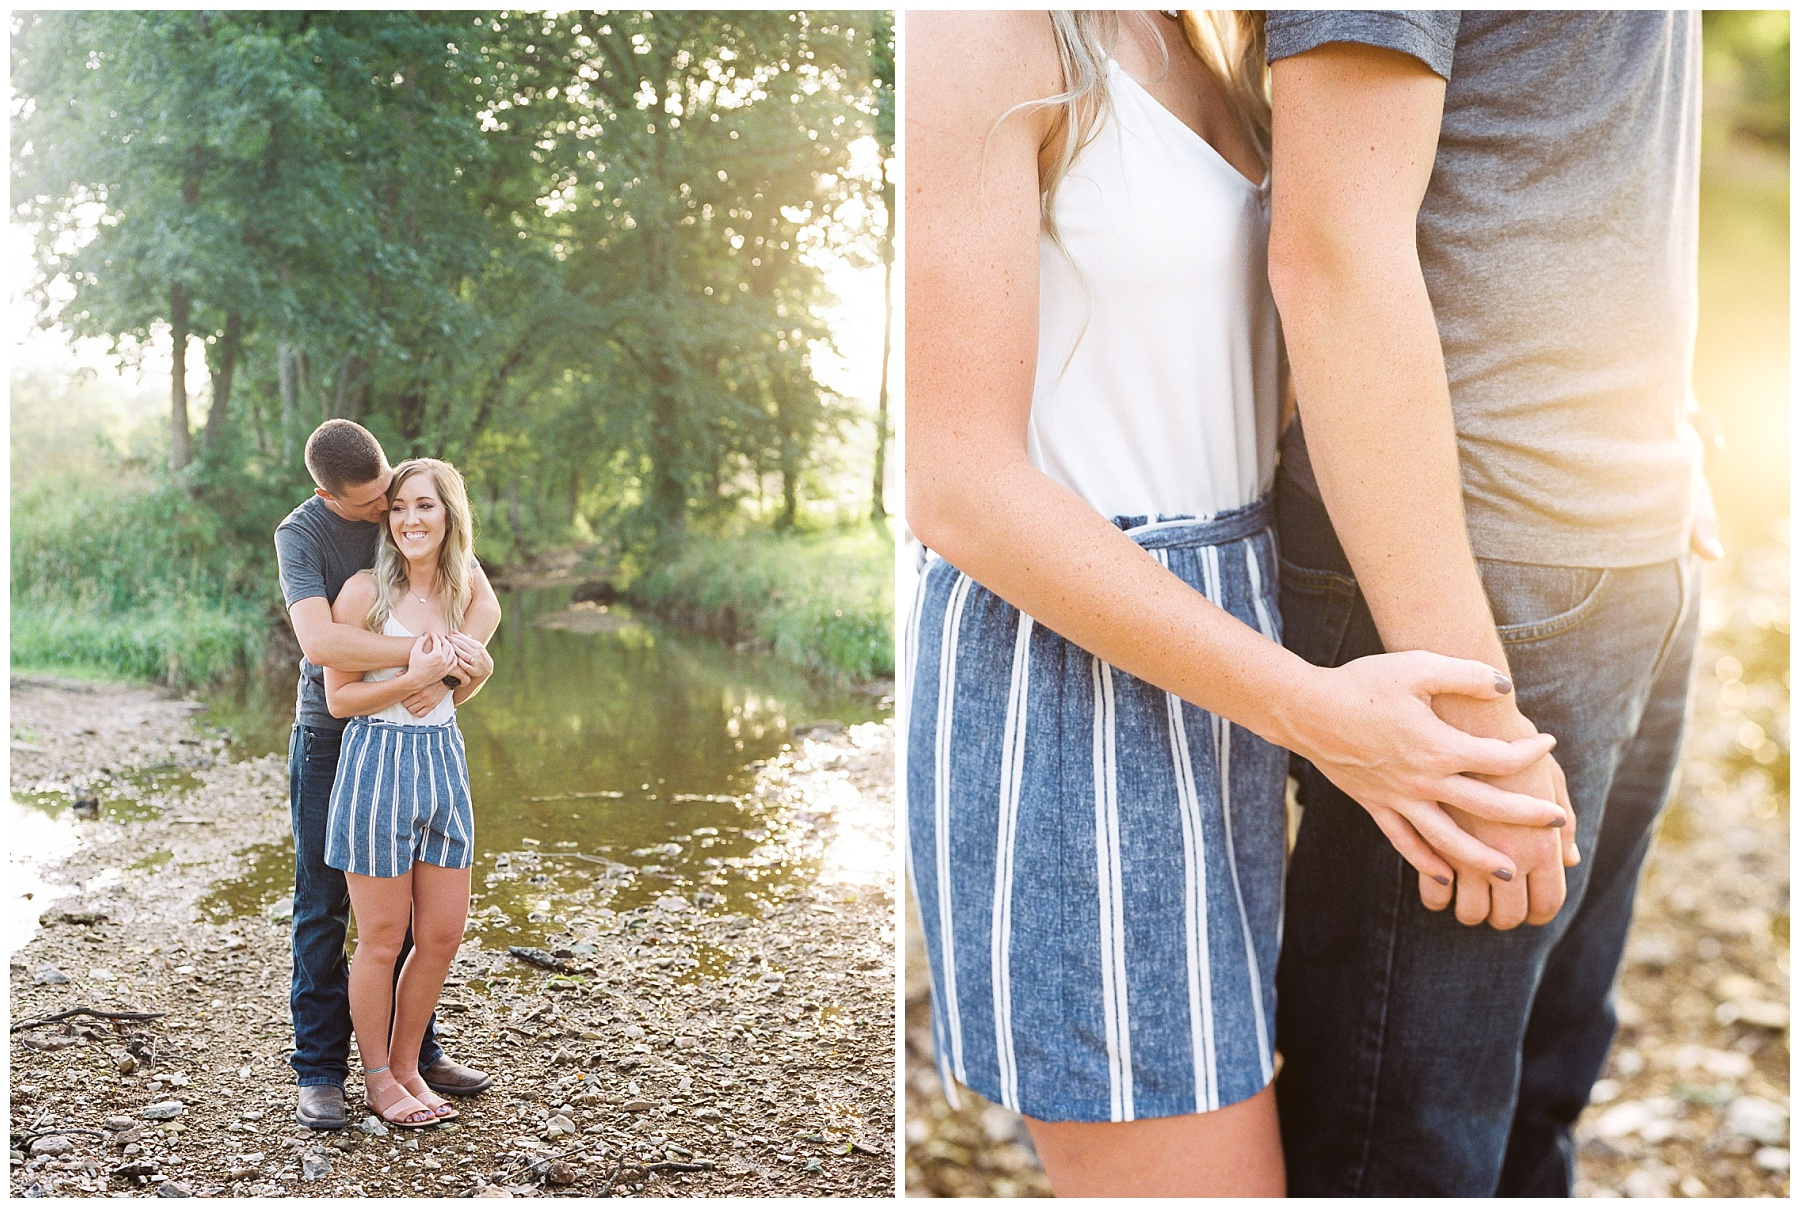 Golden Hour Summer Engagement Session at Lakeside Valley and Vineyards at Kempkers Back 40 by Kelsi Kliethermes Photography Best Missouri and Maui Wedding Photographer_0010.jpg